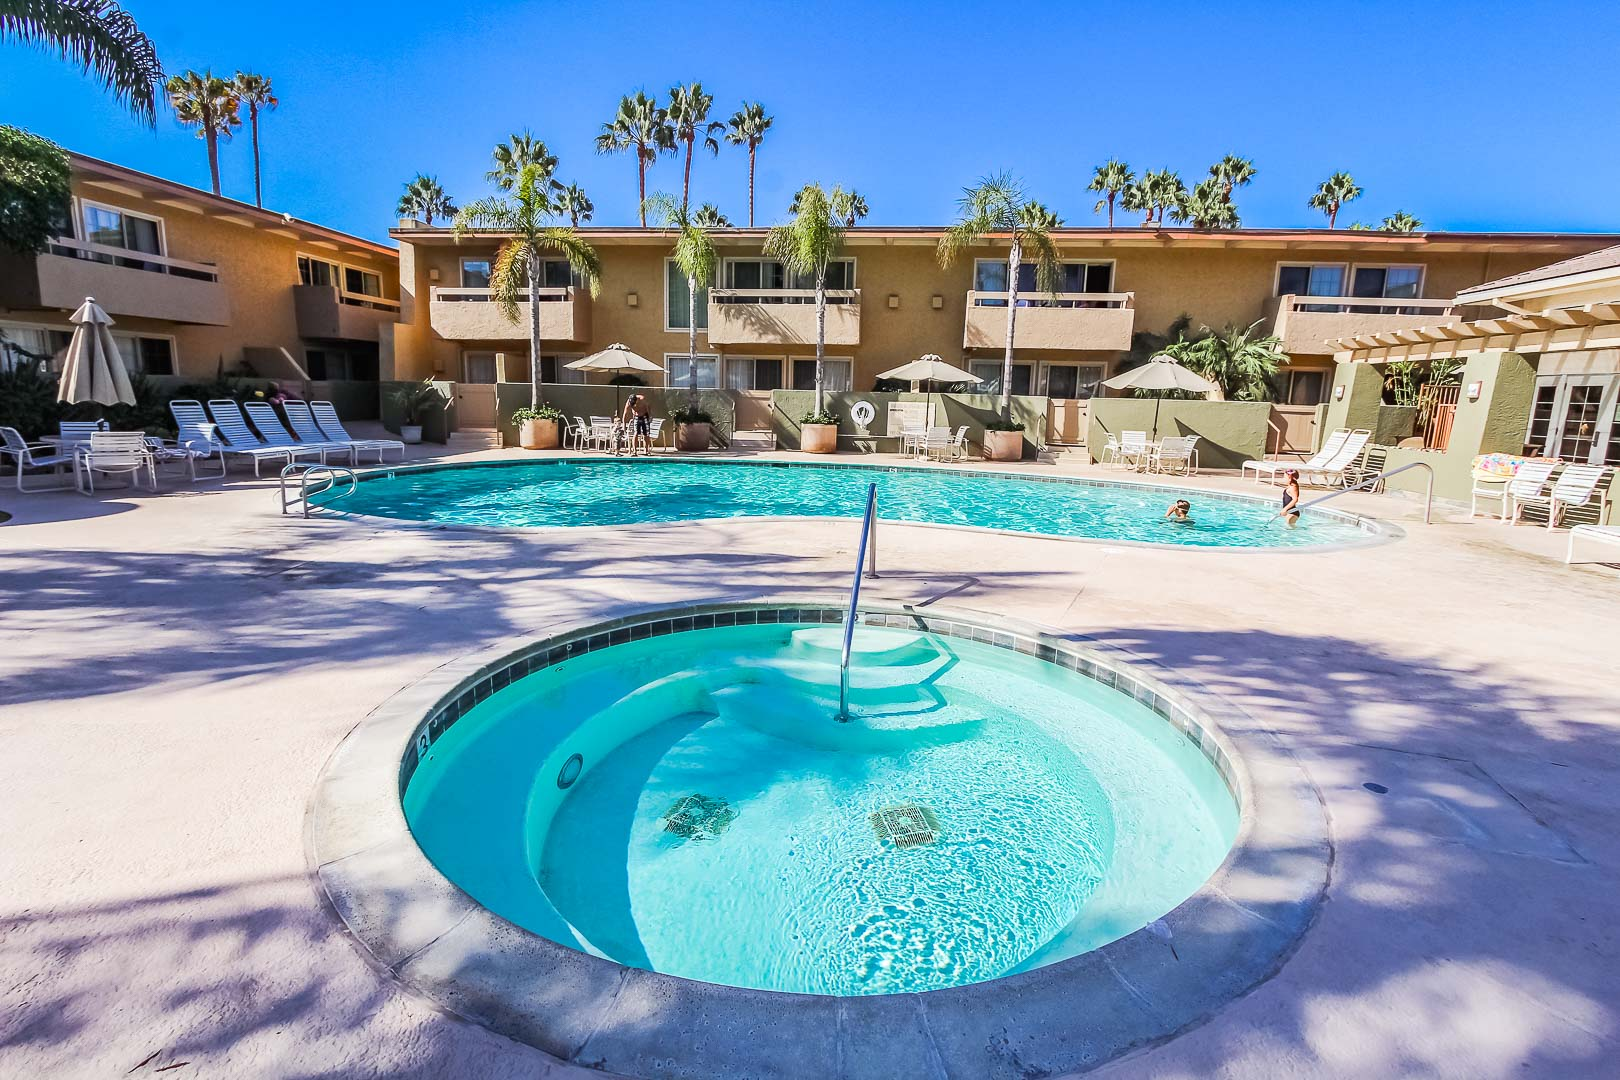 A view of the outdoor swimming pool and Jacuzzi at VRI's Winner Circle Resort in California.